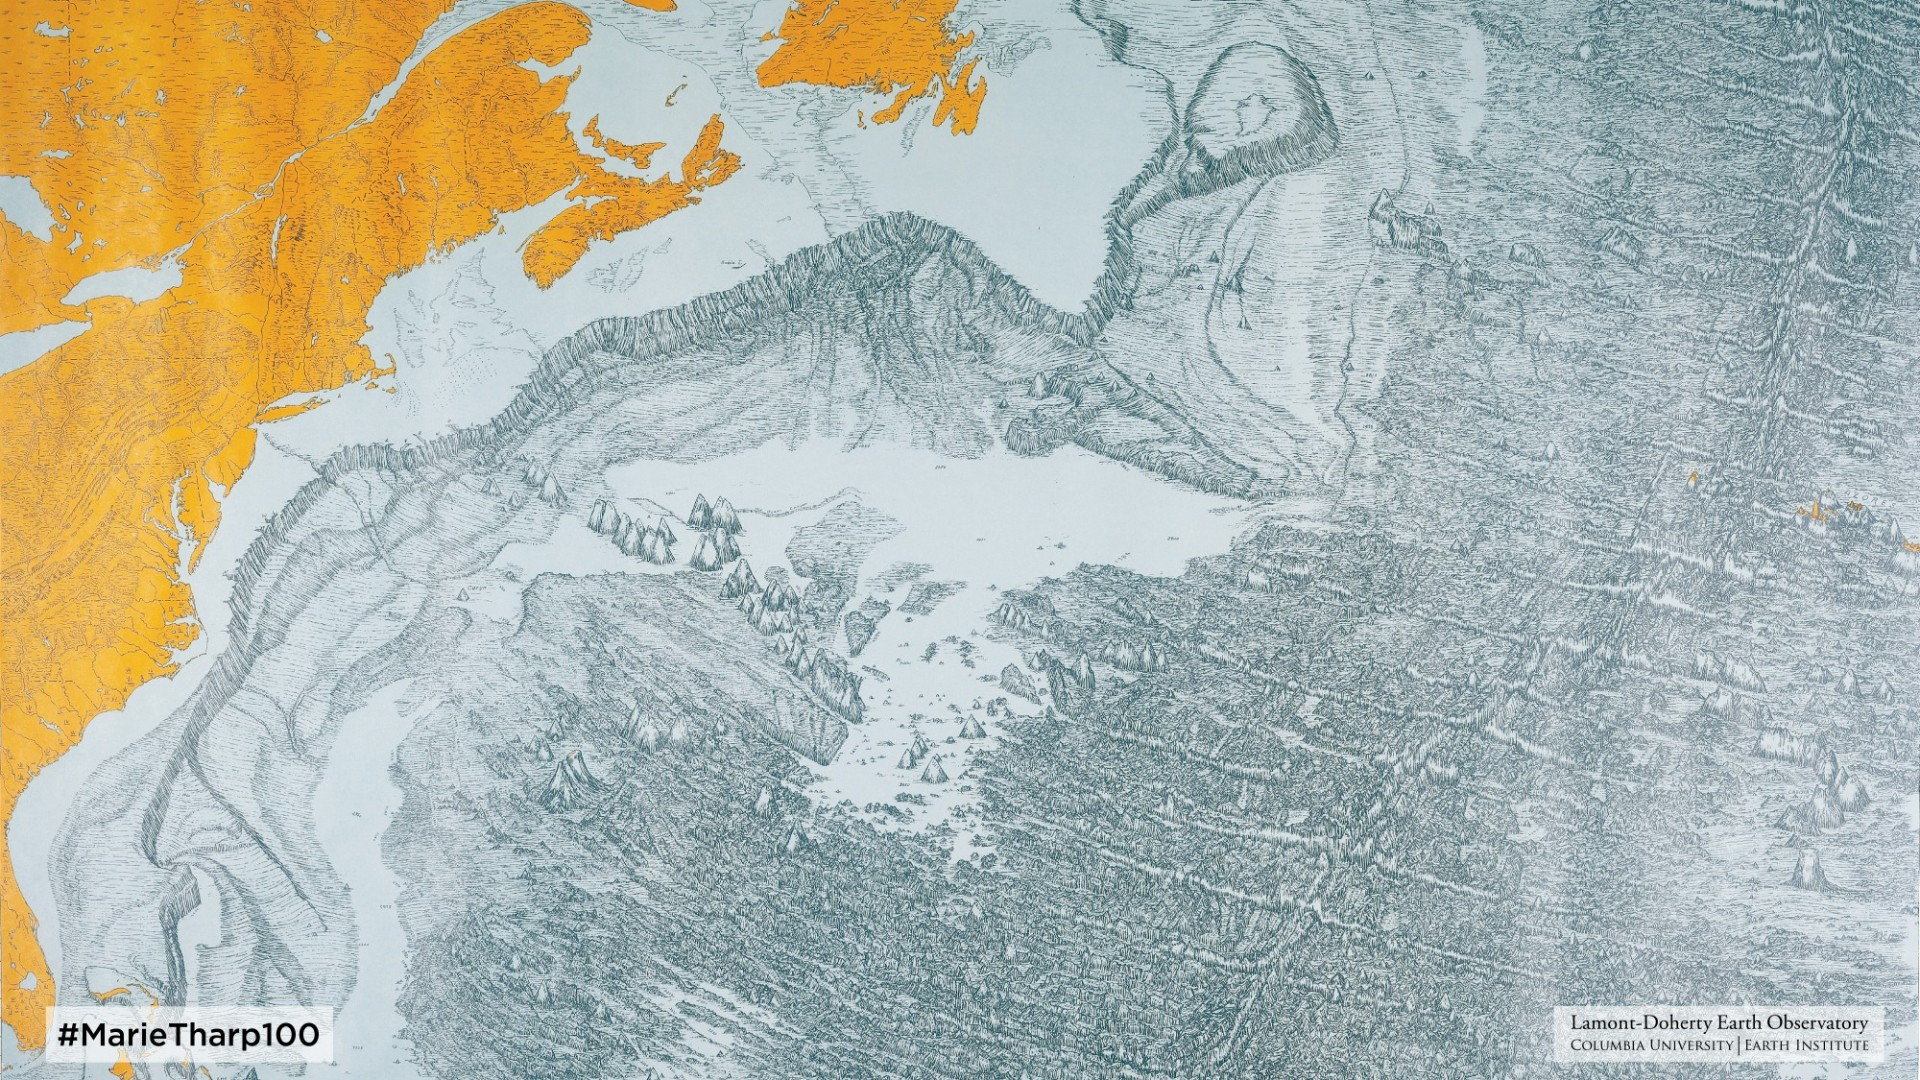 Detail of Physiographic Diagram of the North Atlantic Ocean (1959) by Heezen & Tharp